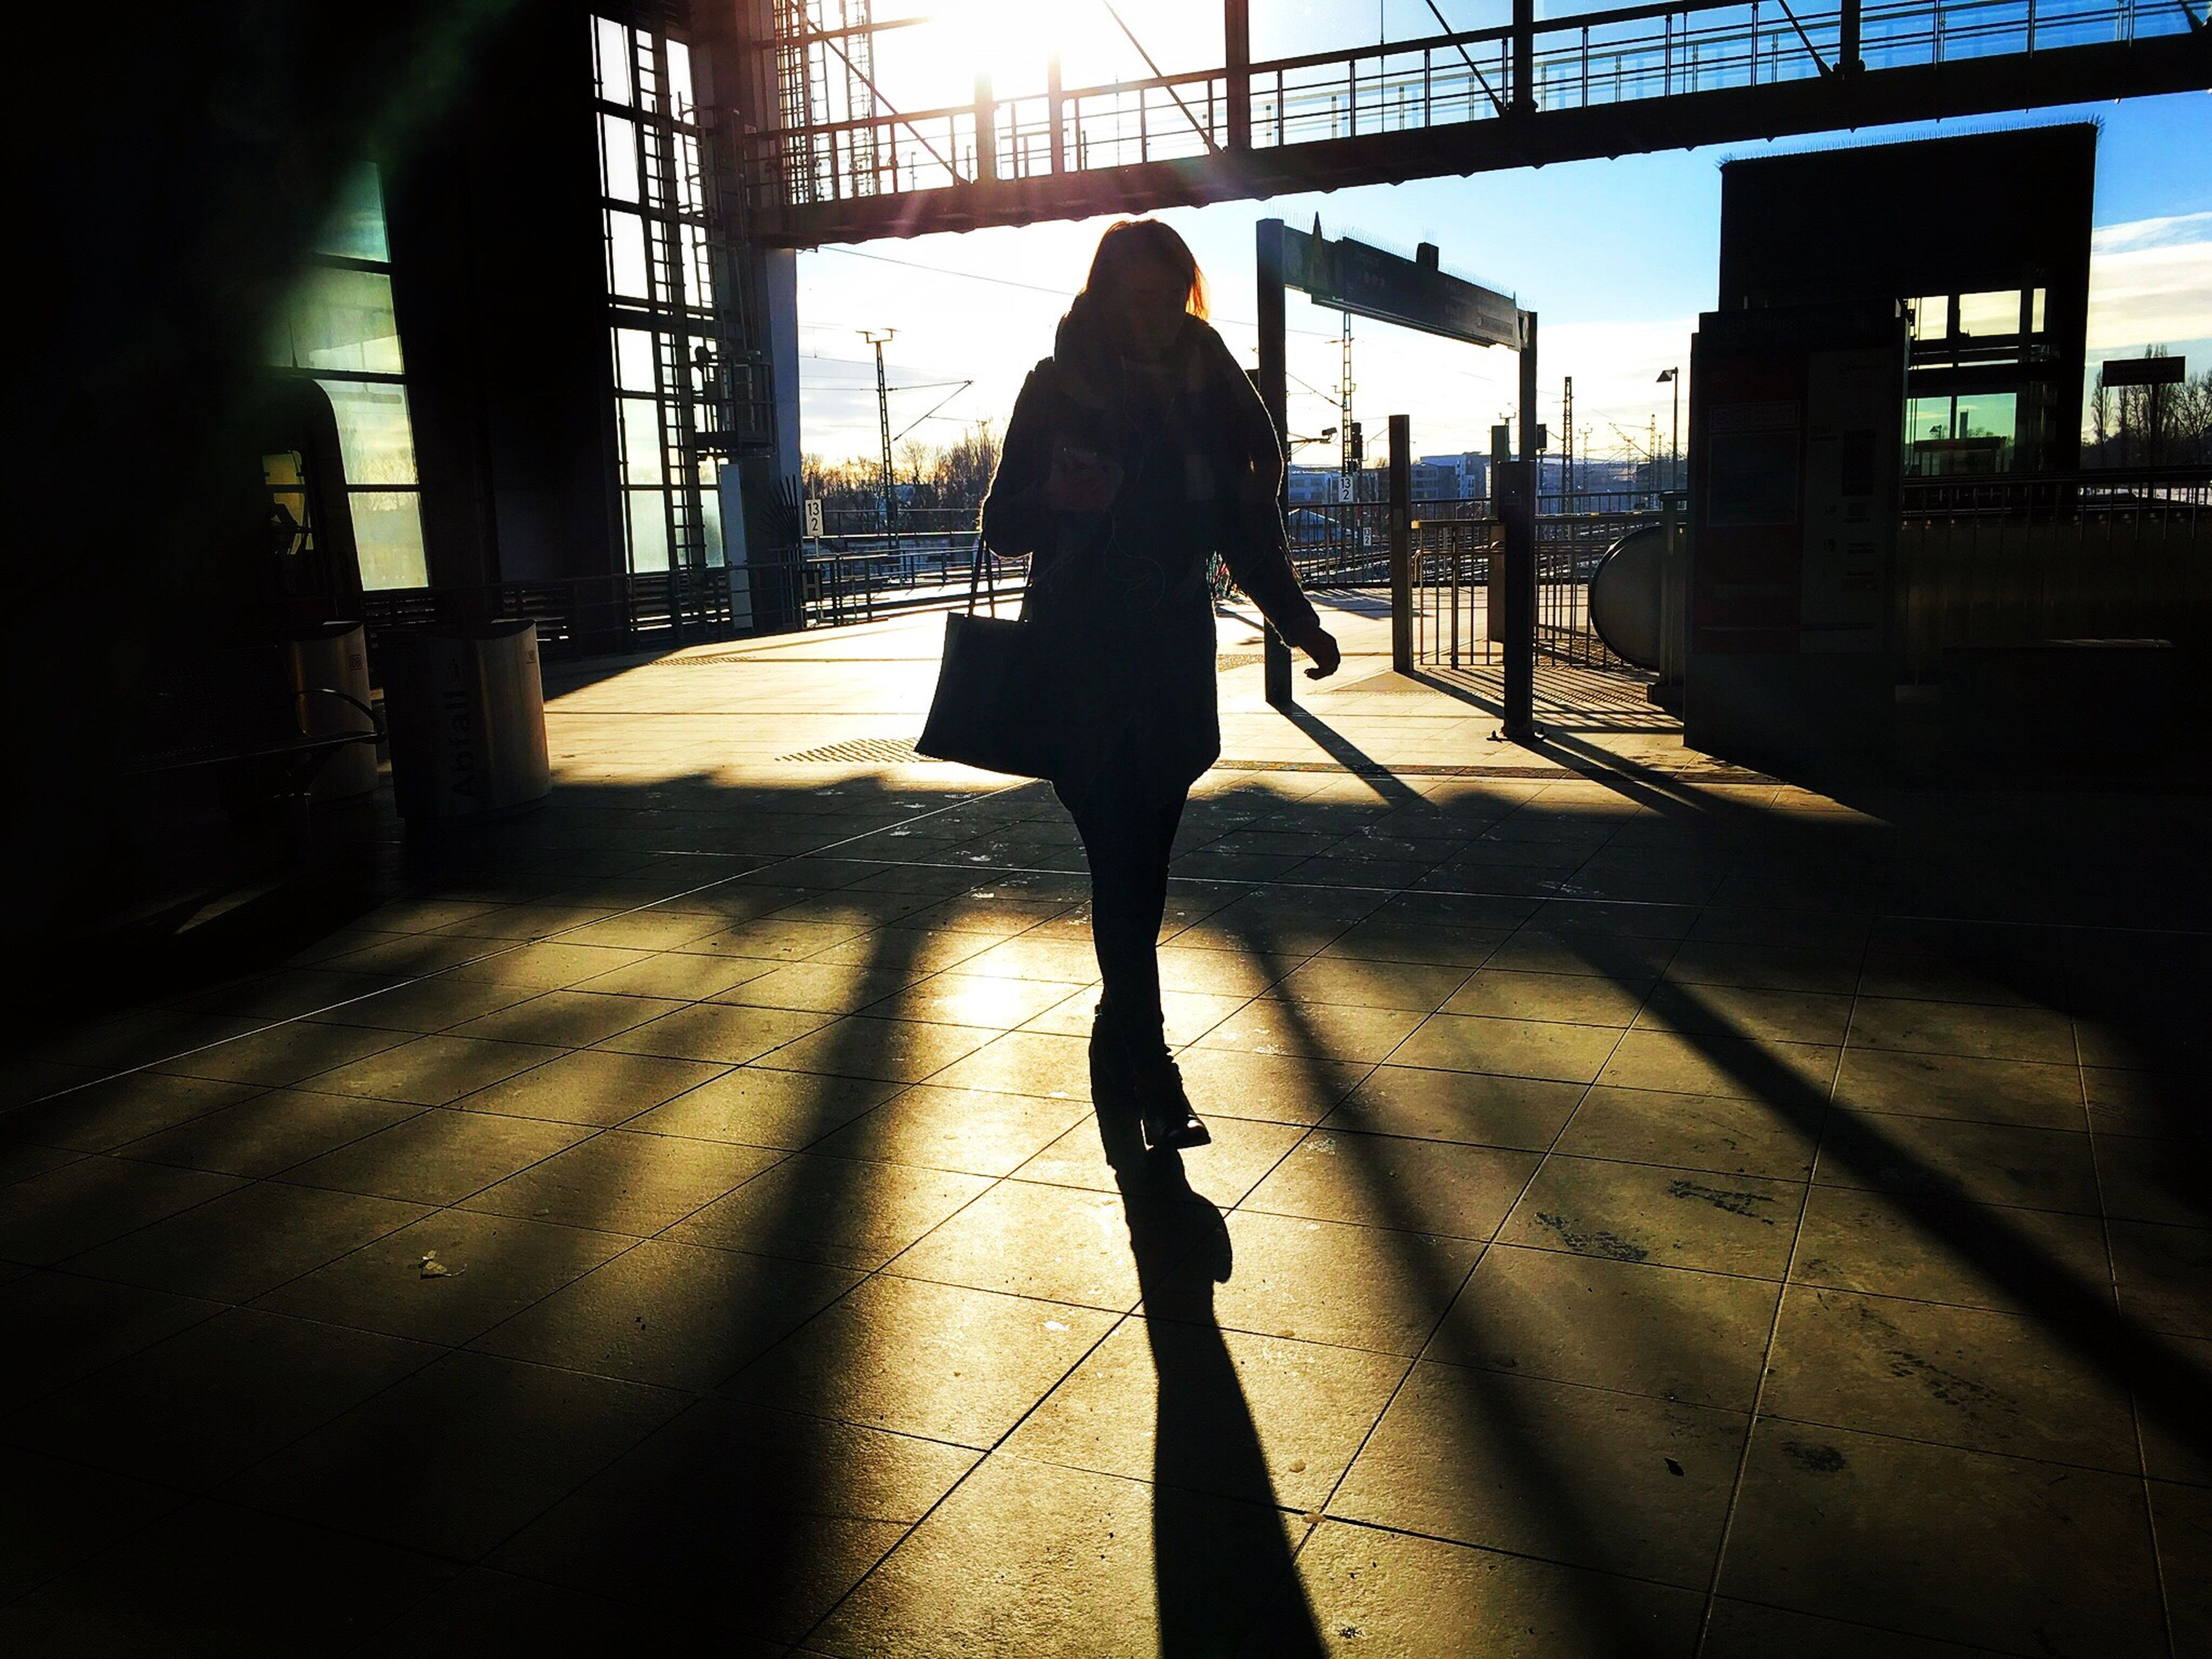 full length, real people, walking, one person, sunlight, shadow, rear view, silhouette, day, adults only, men, people, outdoors, sky, adult, one man only, only men